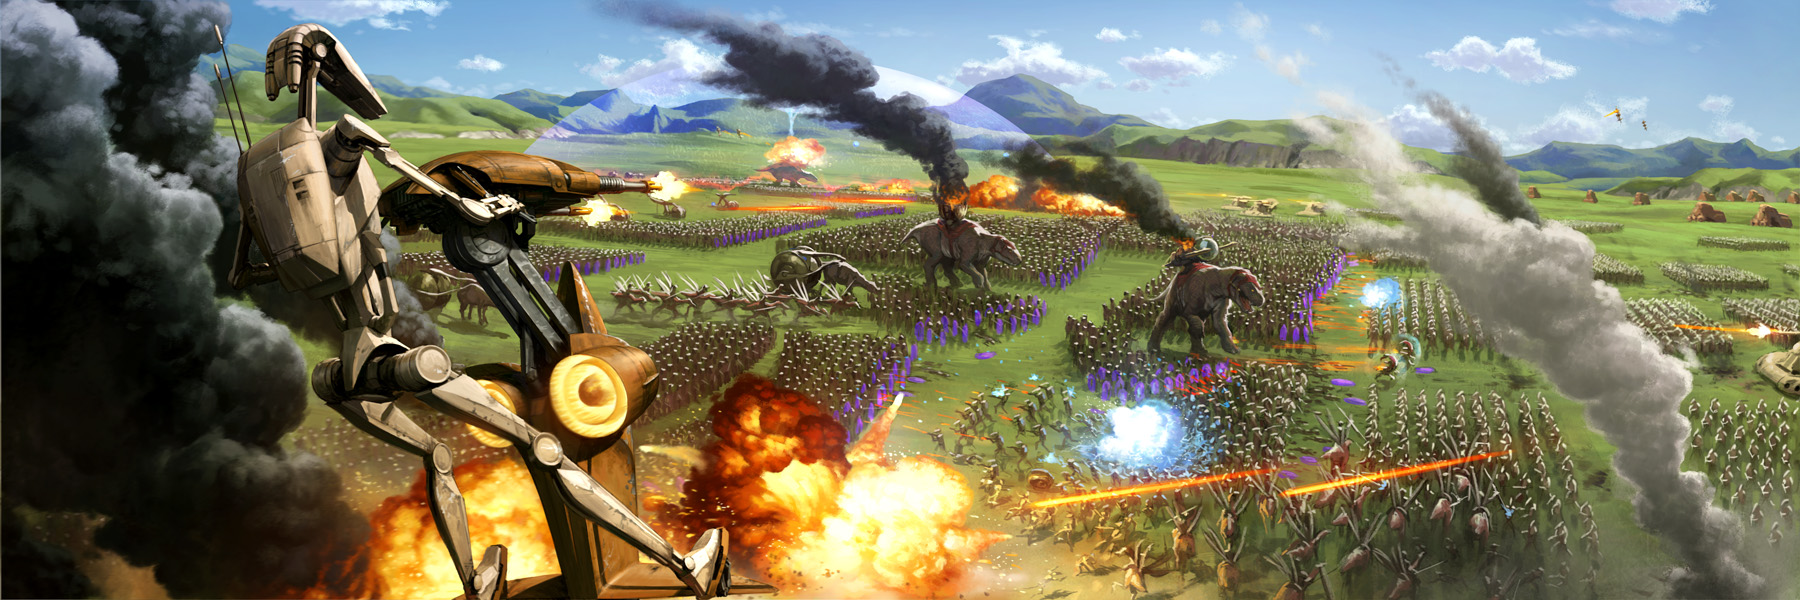 battle of the great grass plains by wrai